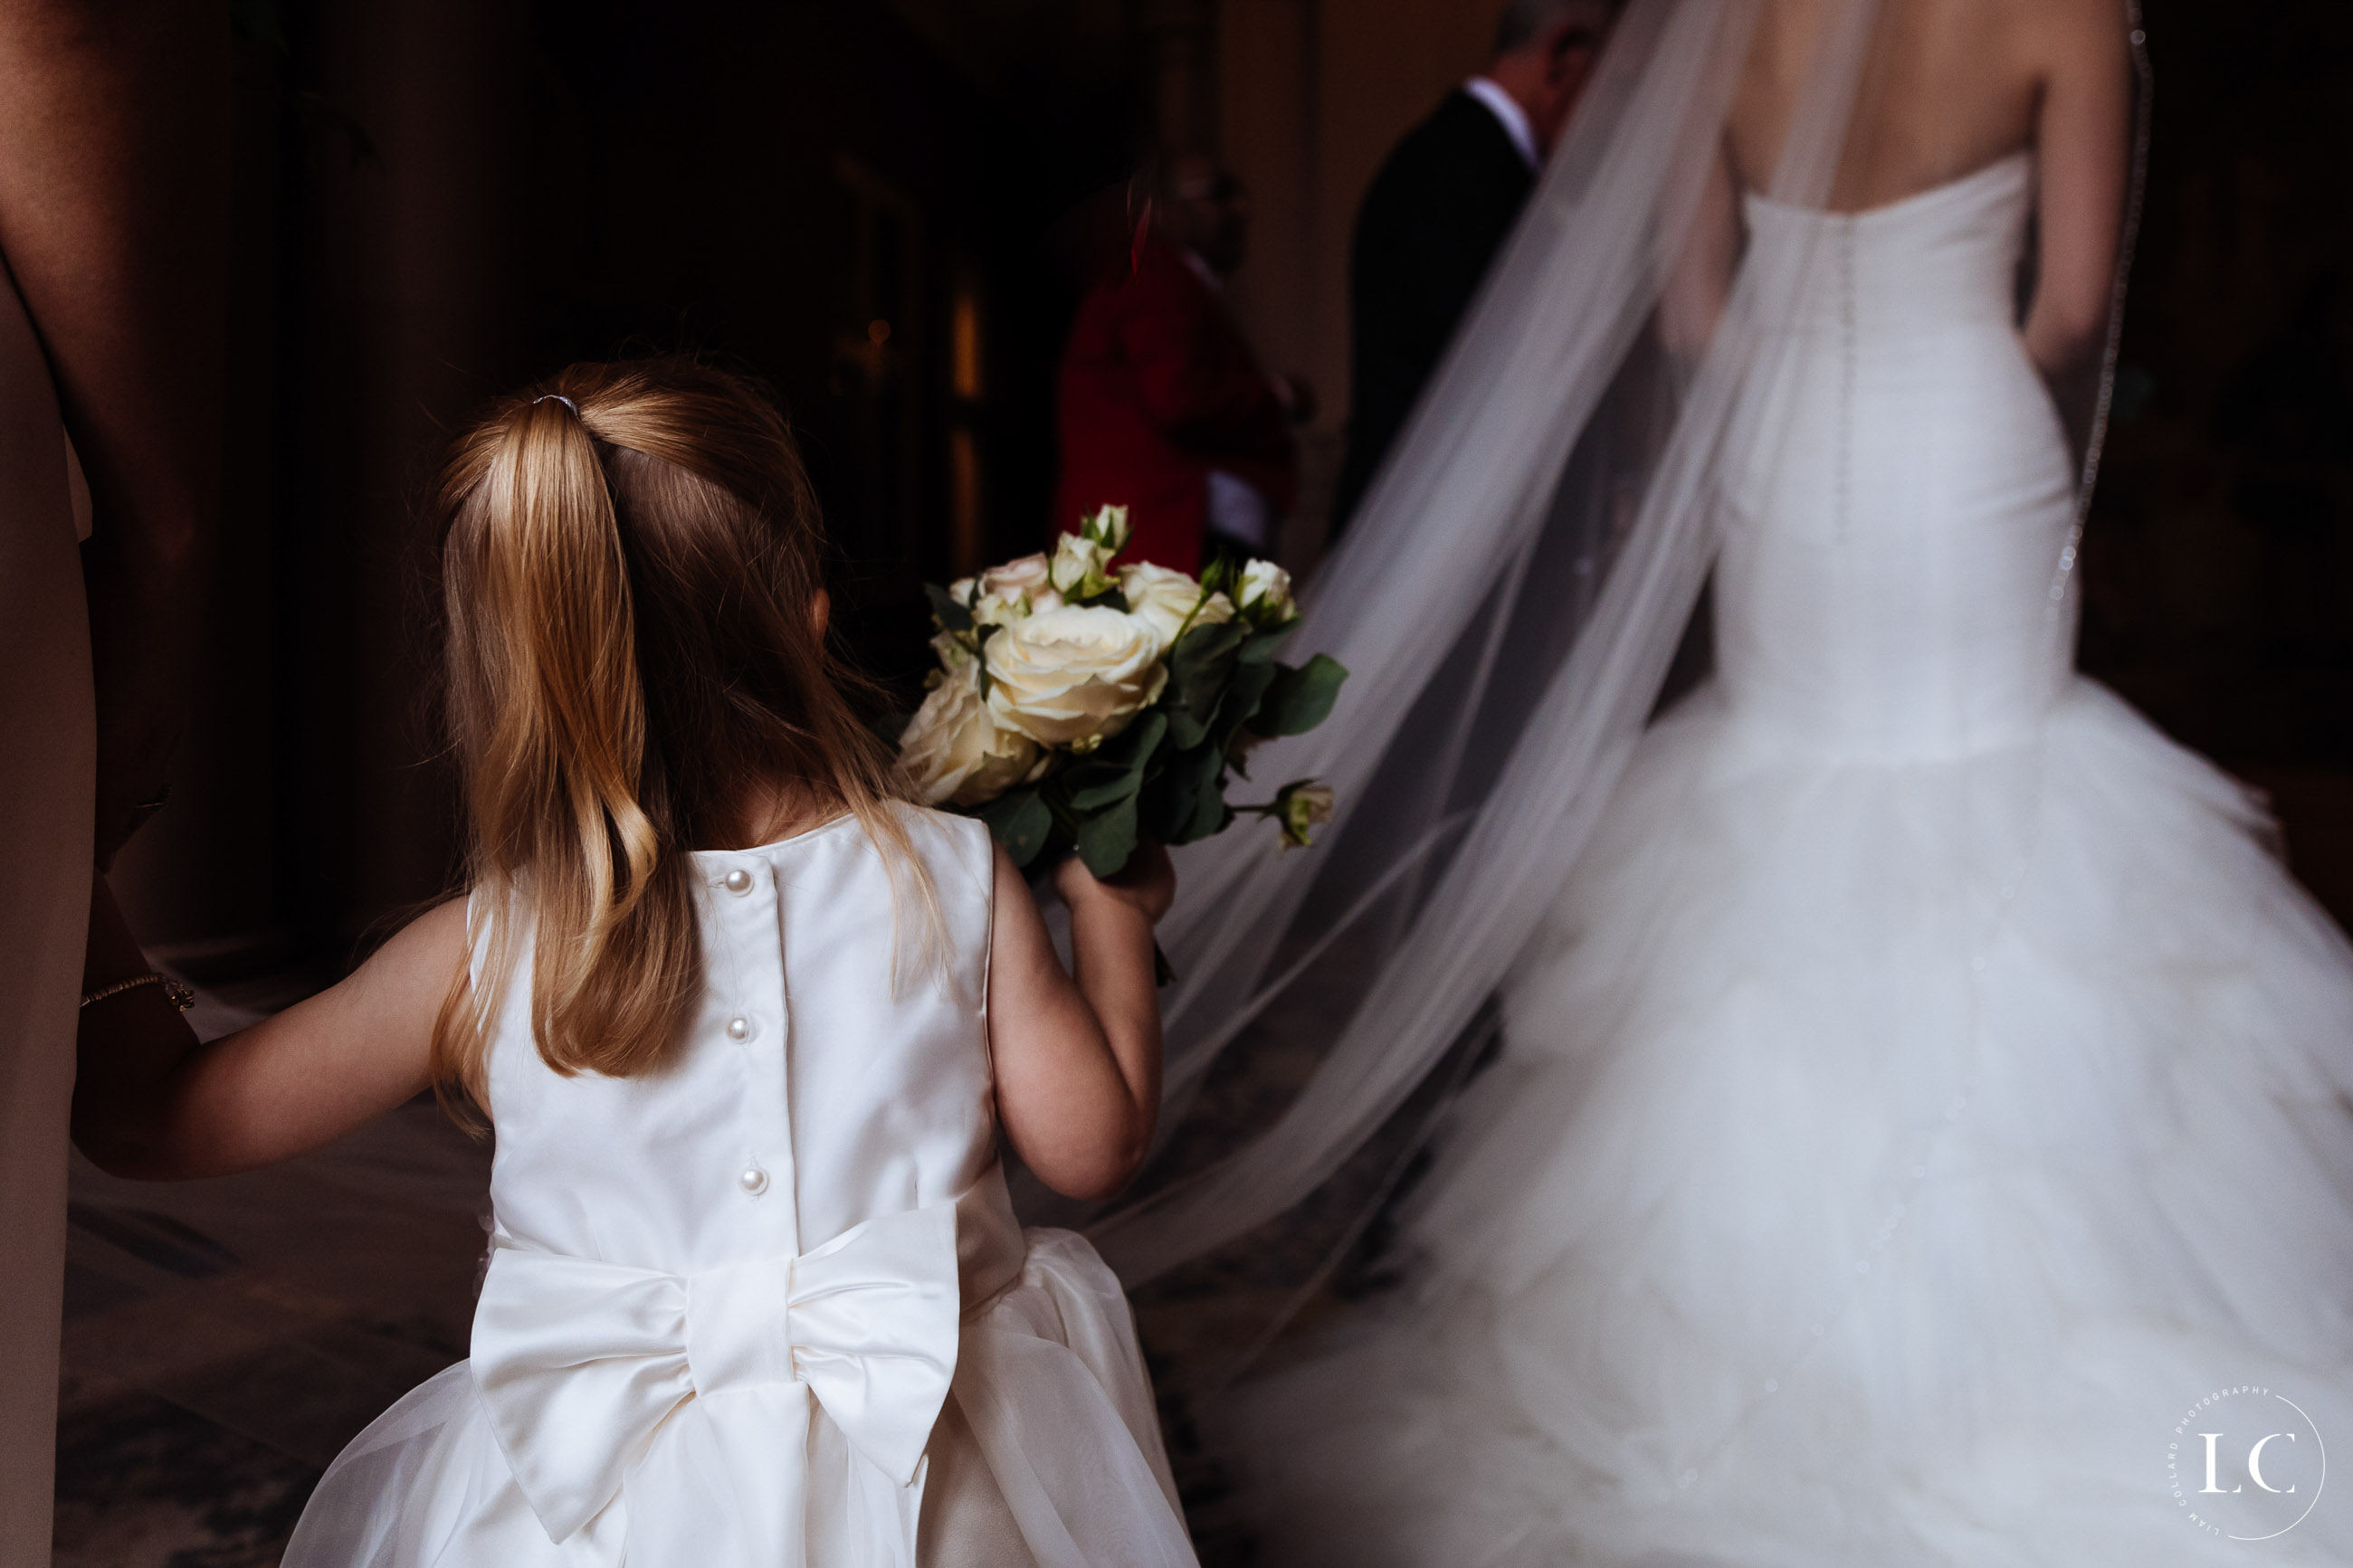 A child touching the wedding dress